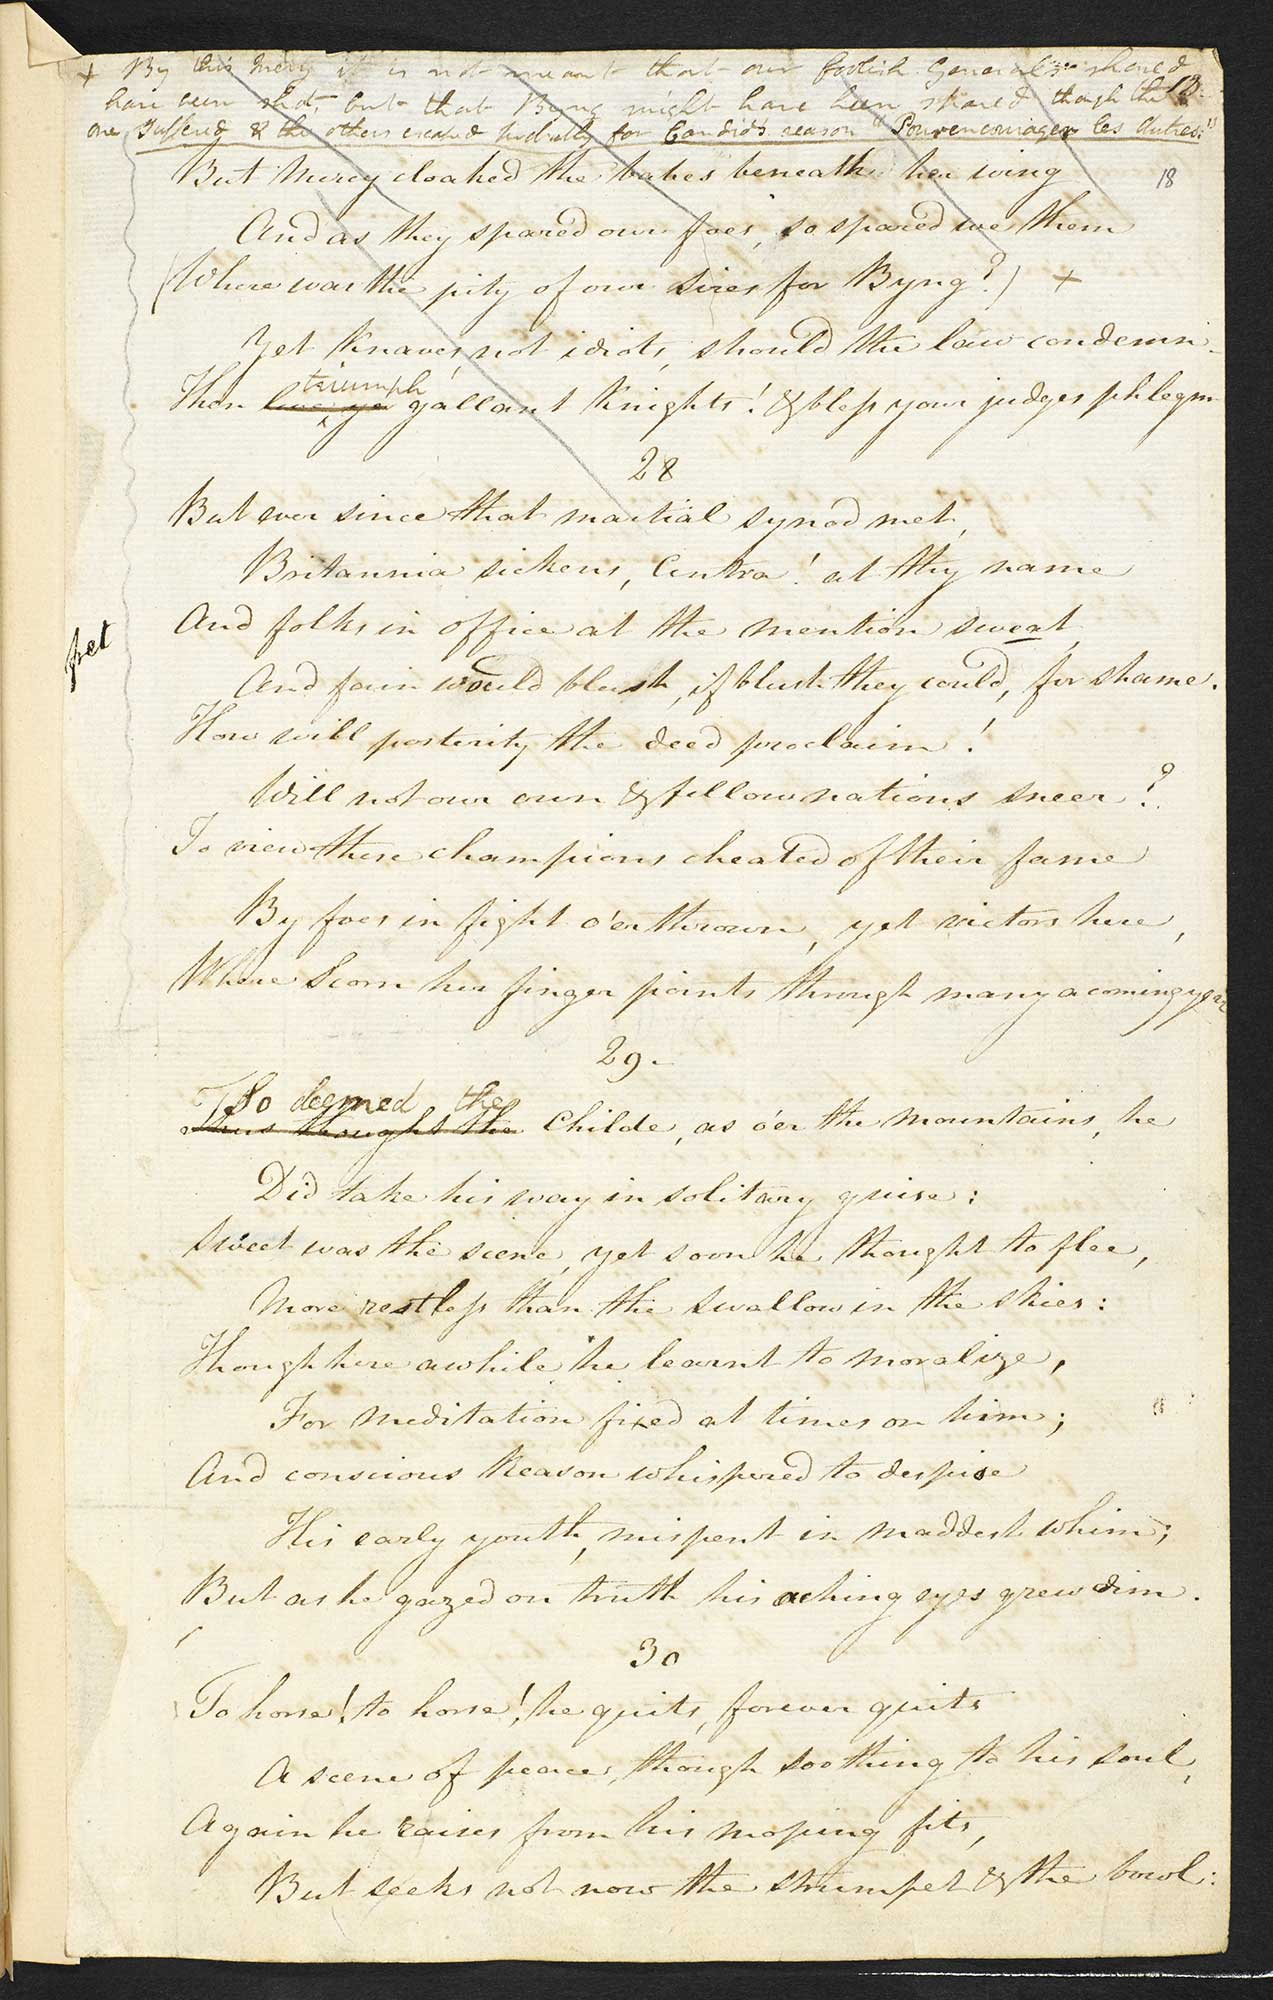 Manuscript of Childe Harold's Pilgrimage by Byron, Cantos I and II